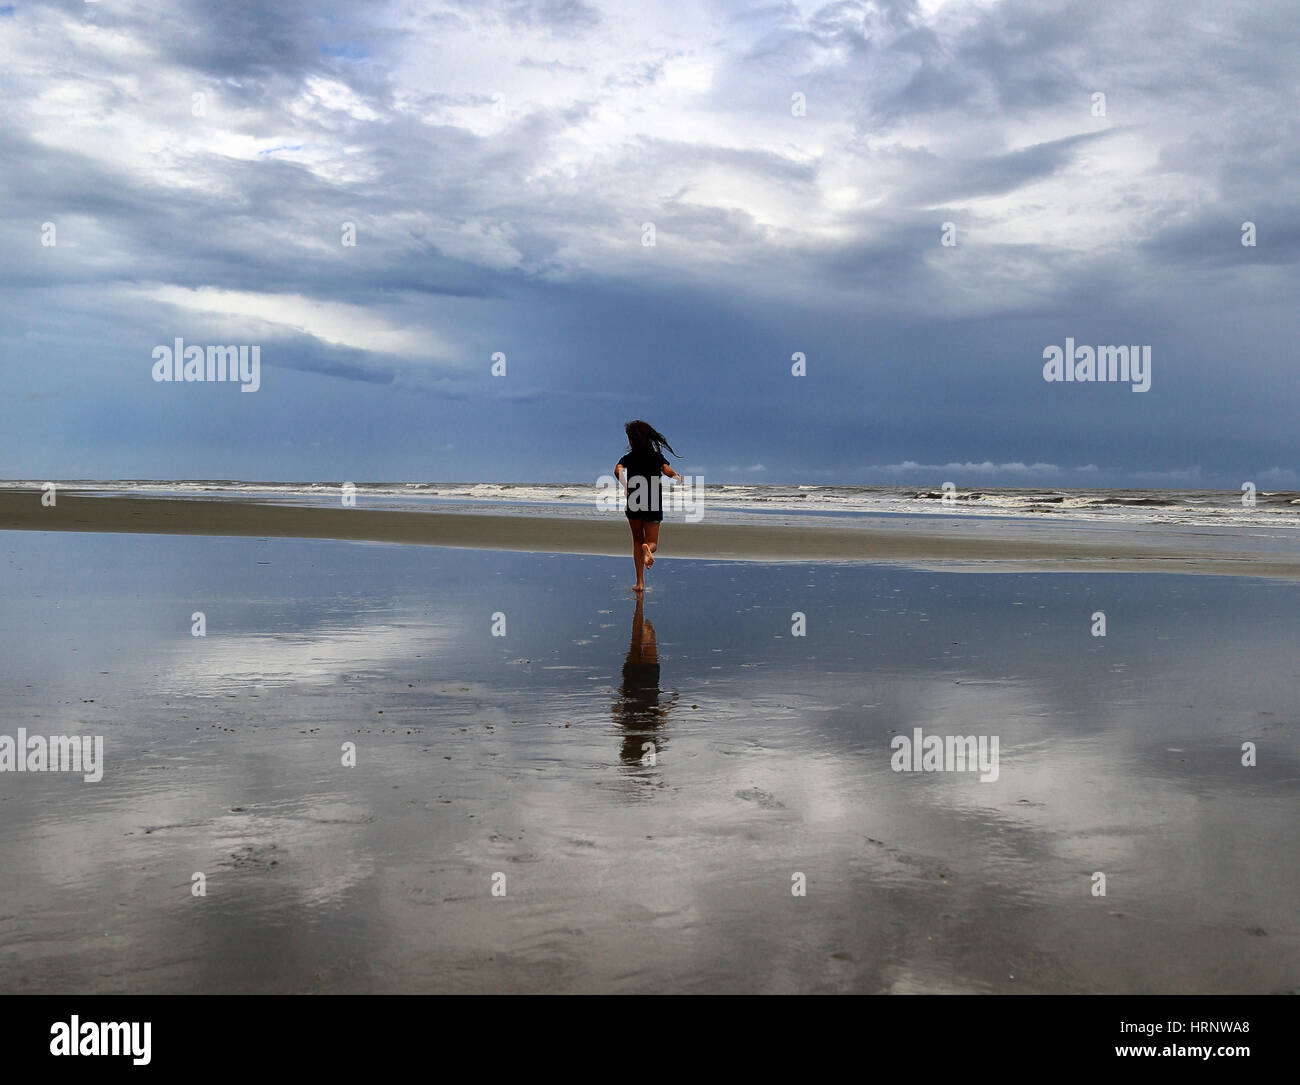 Tween girl wearing a bathing suit runs toward the waves on the beach at Kiawah Island, South Carolina. It is a stormy - Stock Image